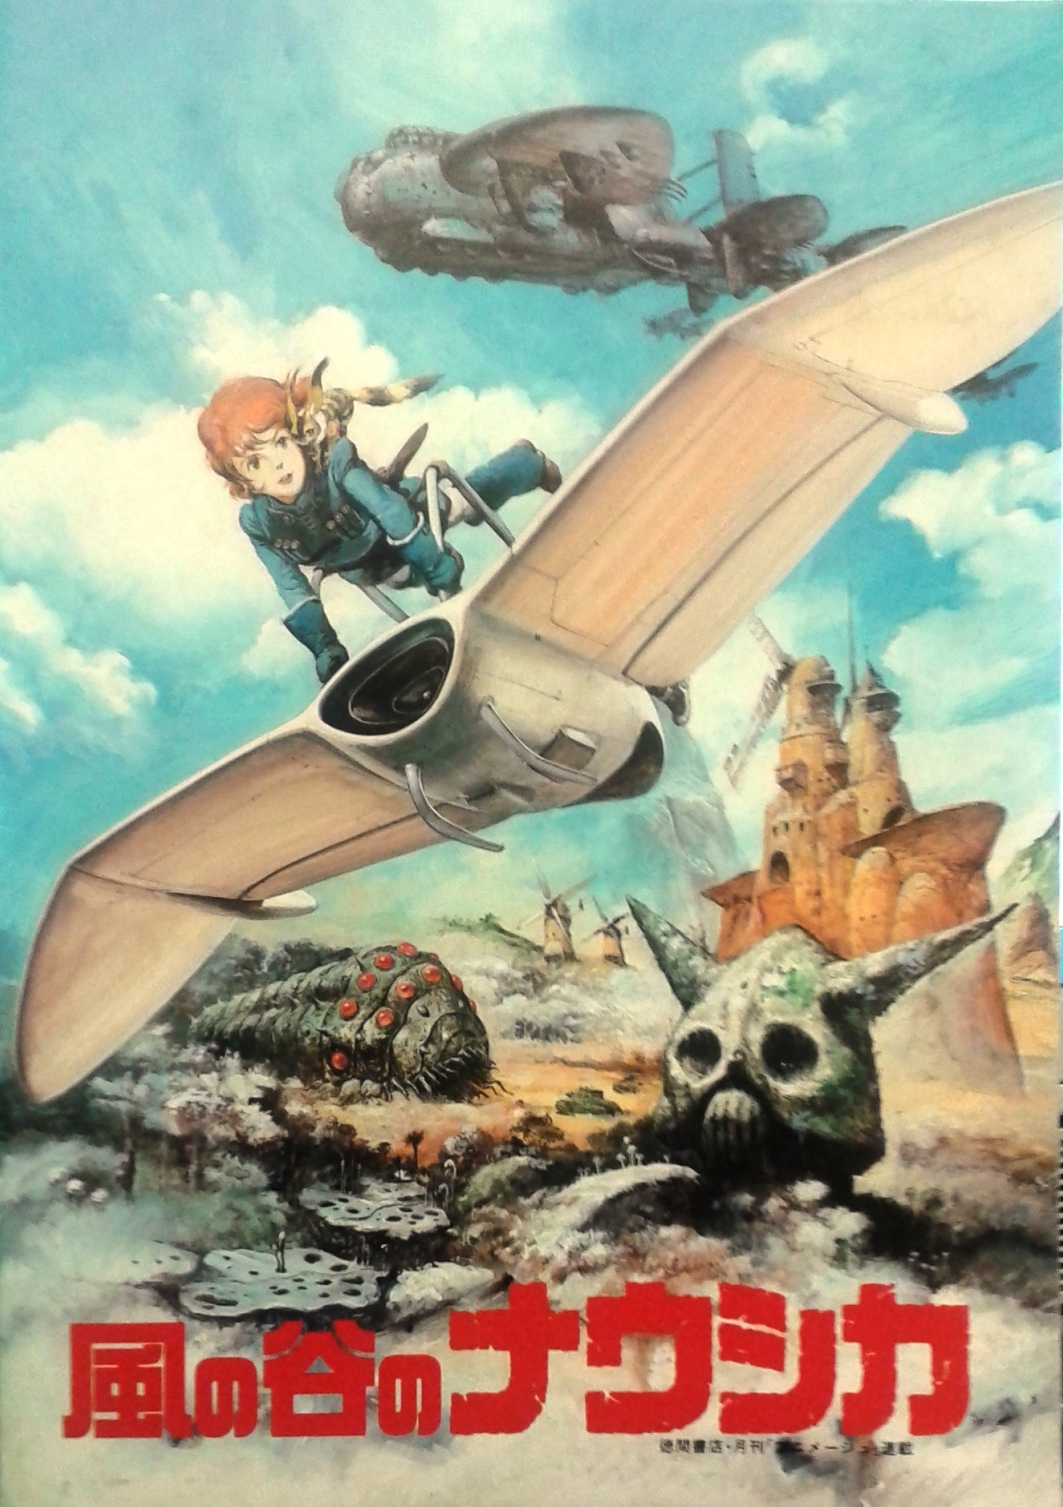 * One of the masterpieces in Japanese anime film history. Japanese animated film program. Nausicaä of the Valley of the Wind (1984), directed by Miyazaki Hayao.